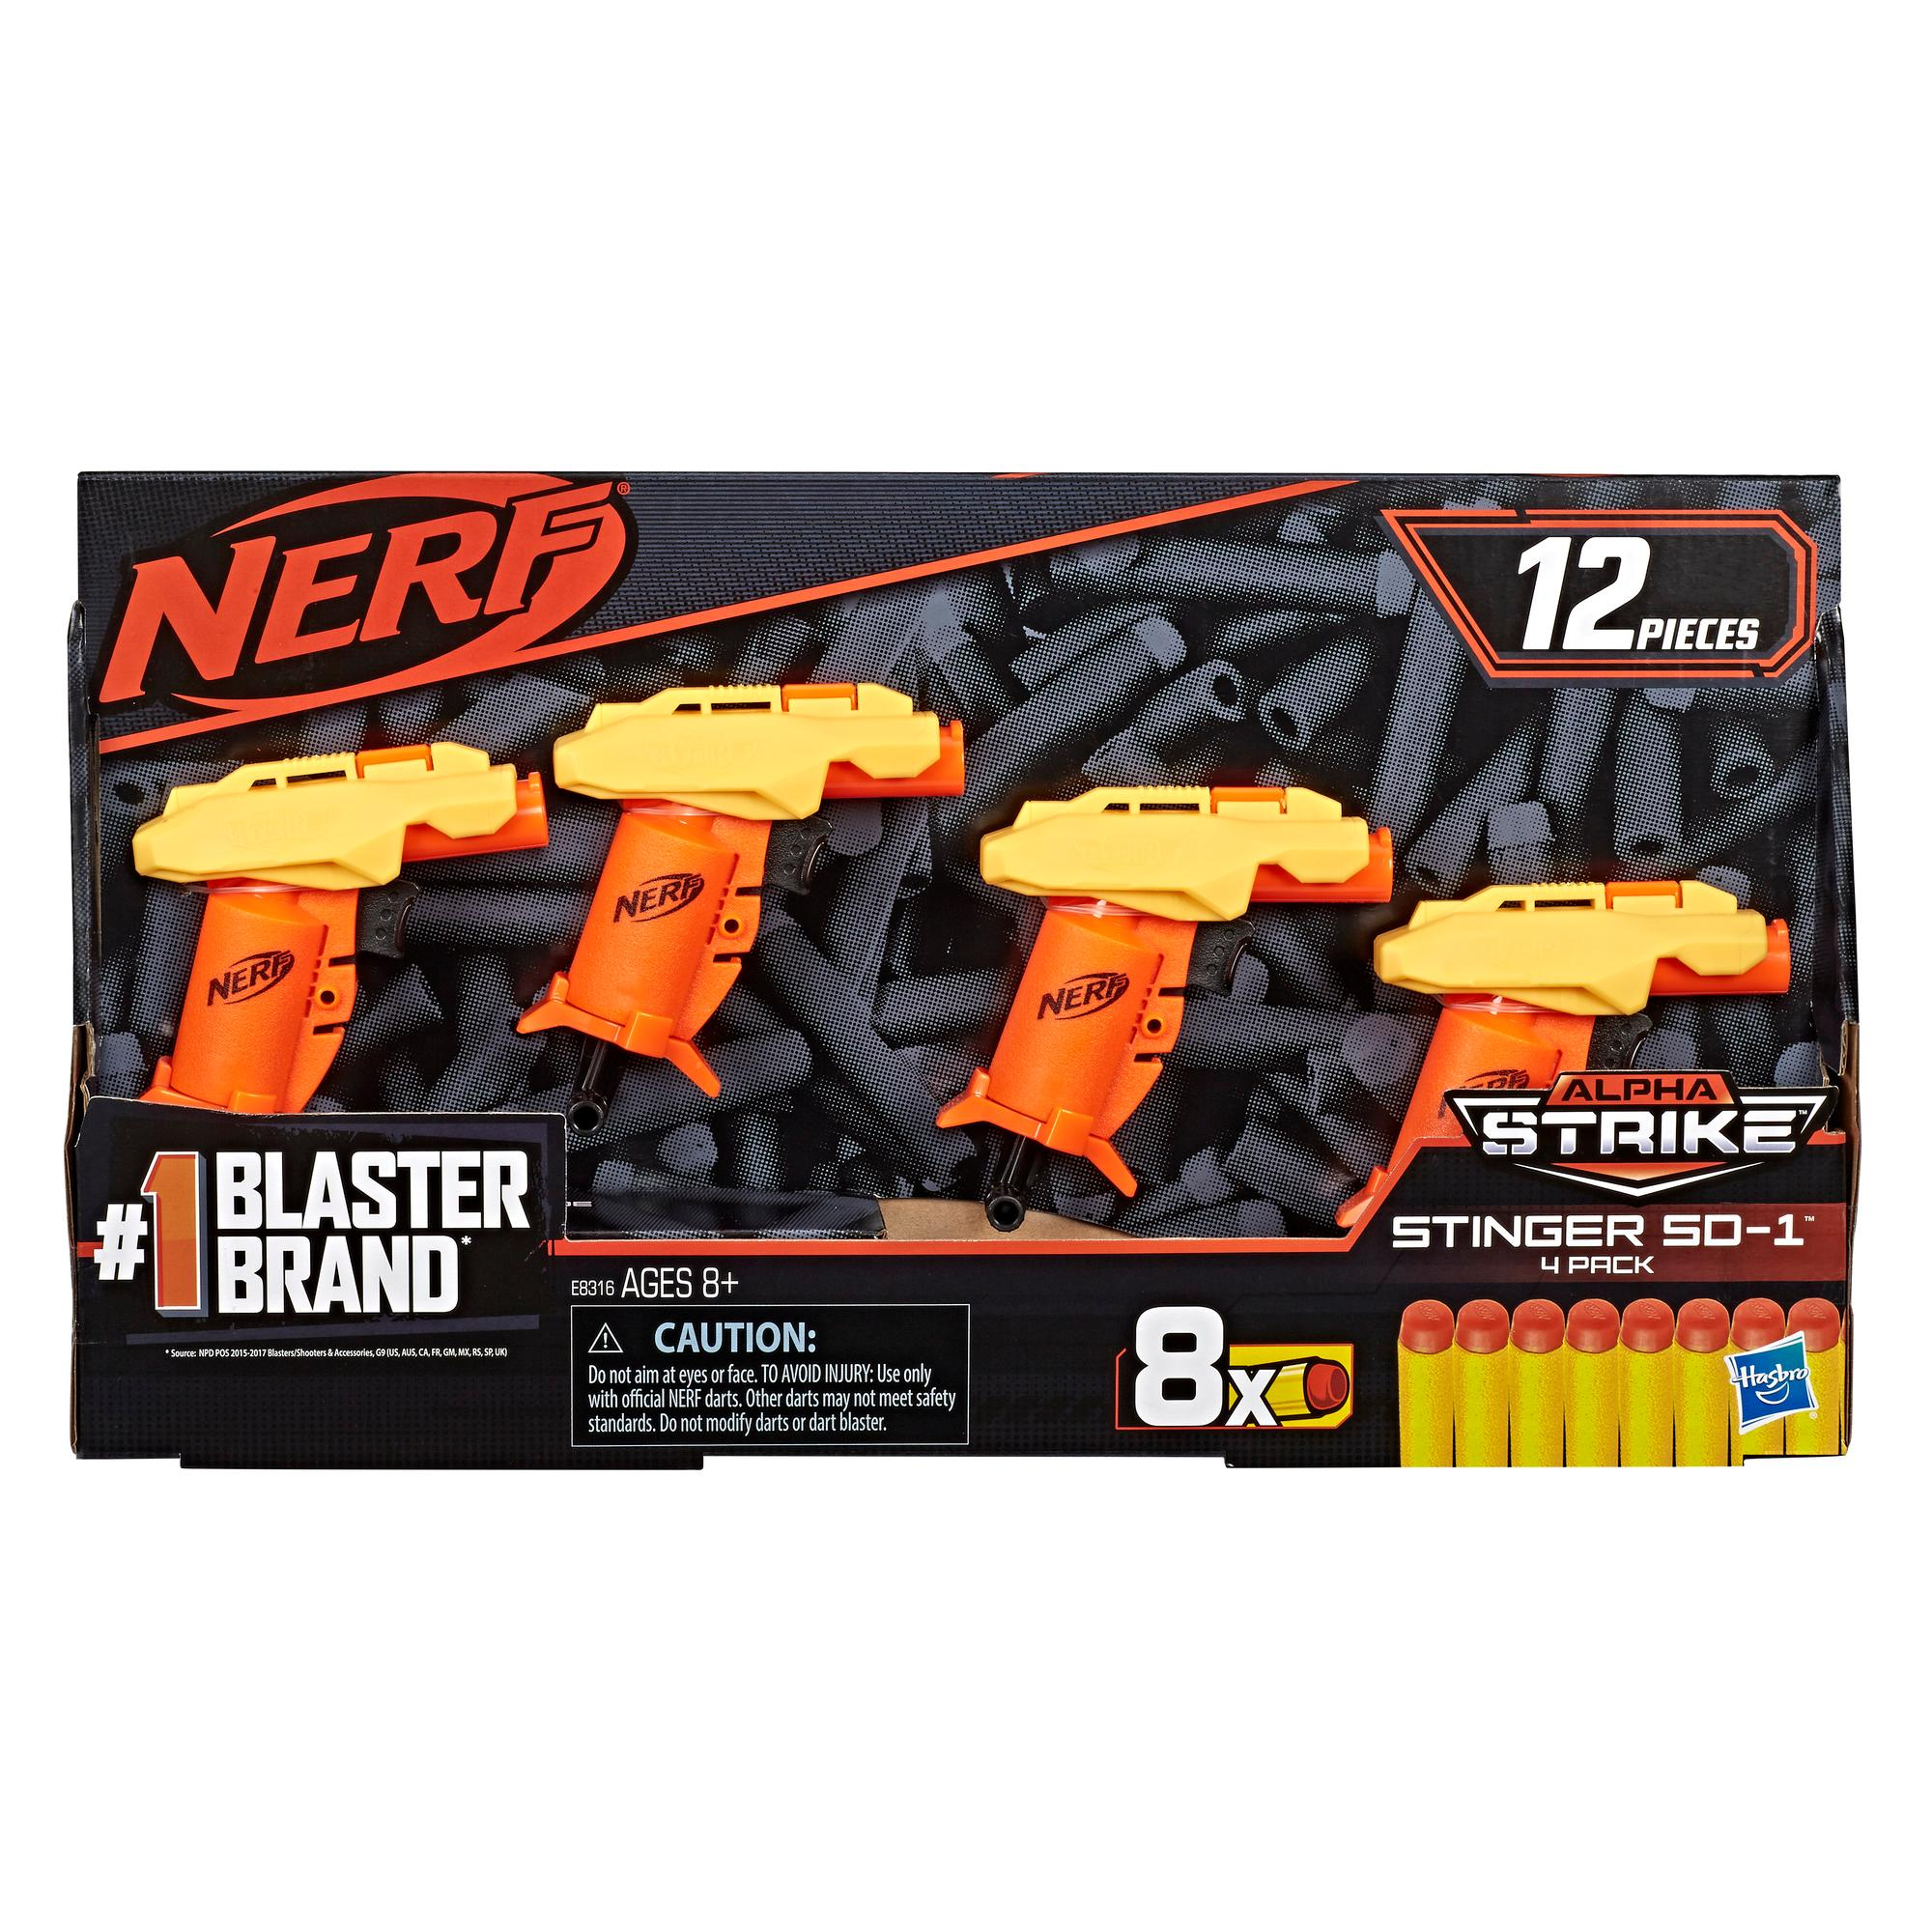 Nerf Alpha Strike Stinger SD-1 Pack de 4 -- 12 piezas